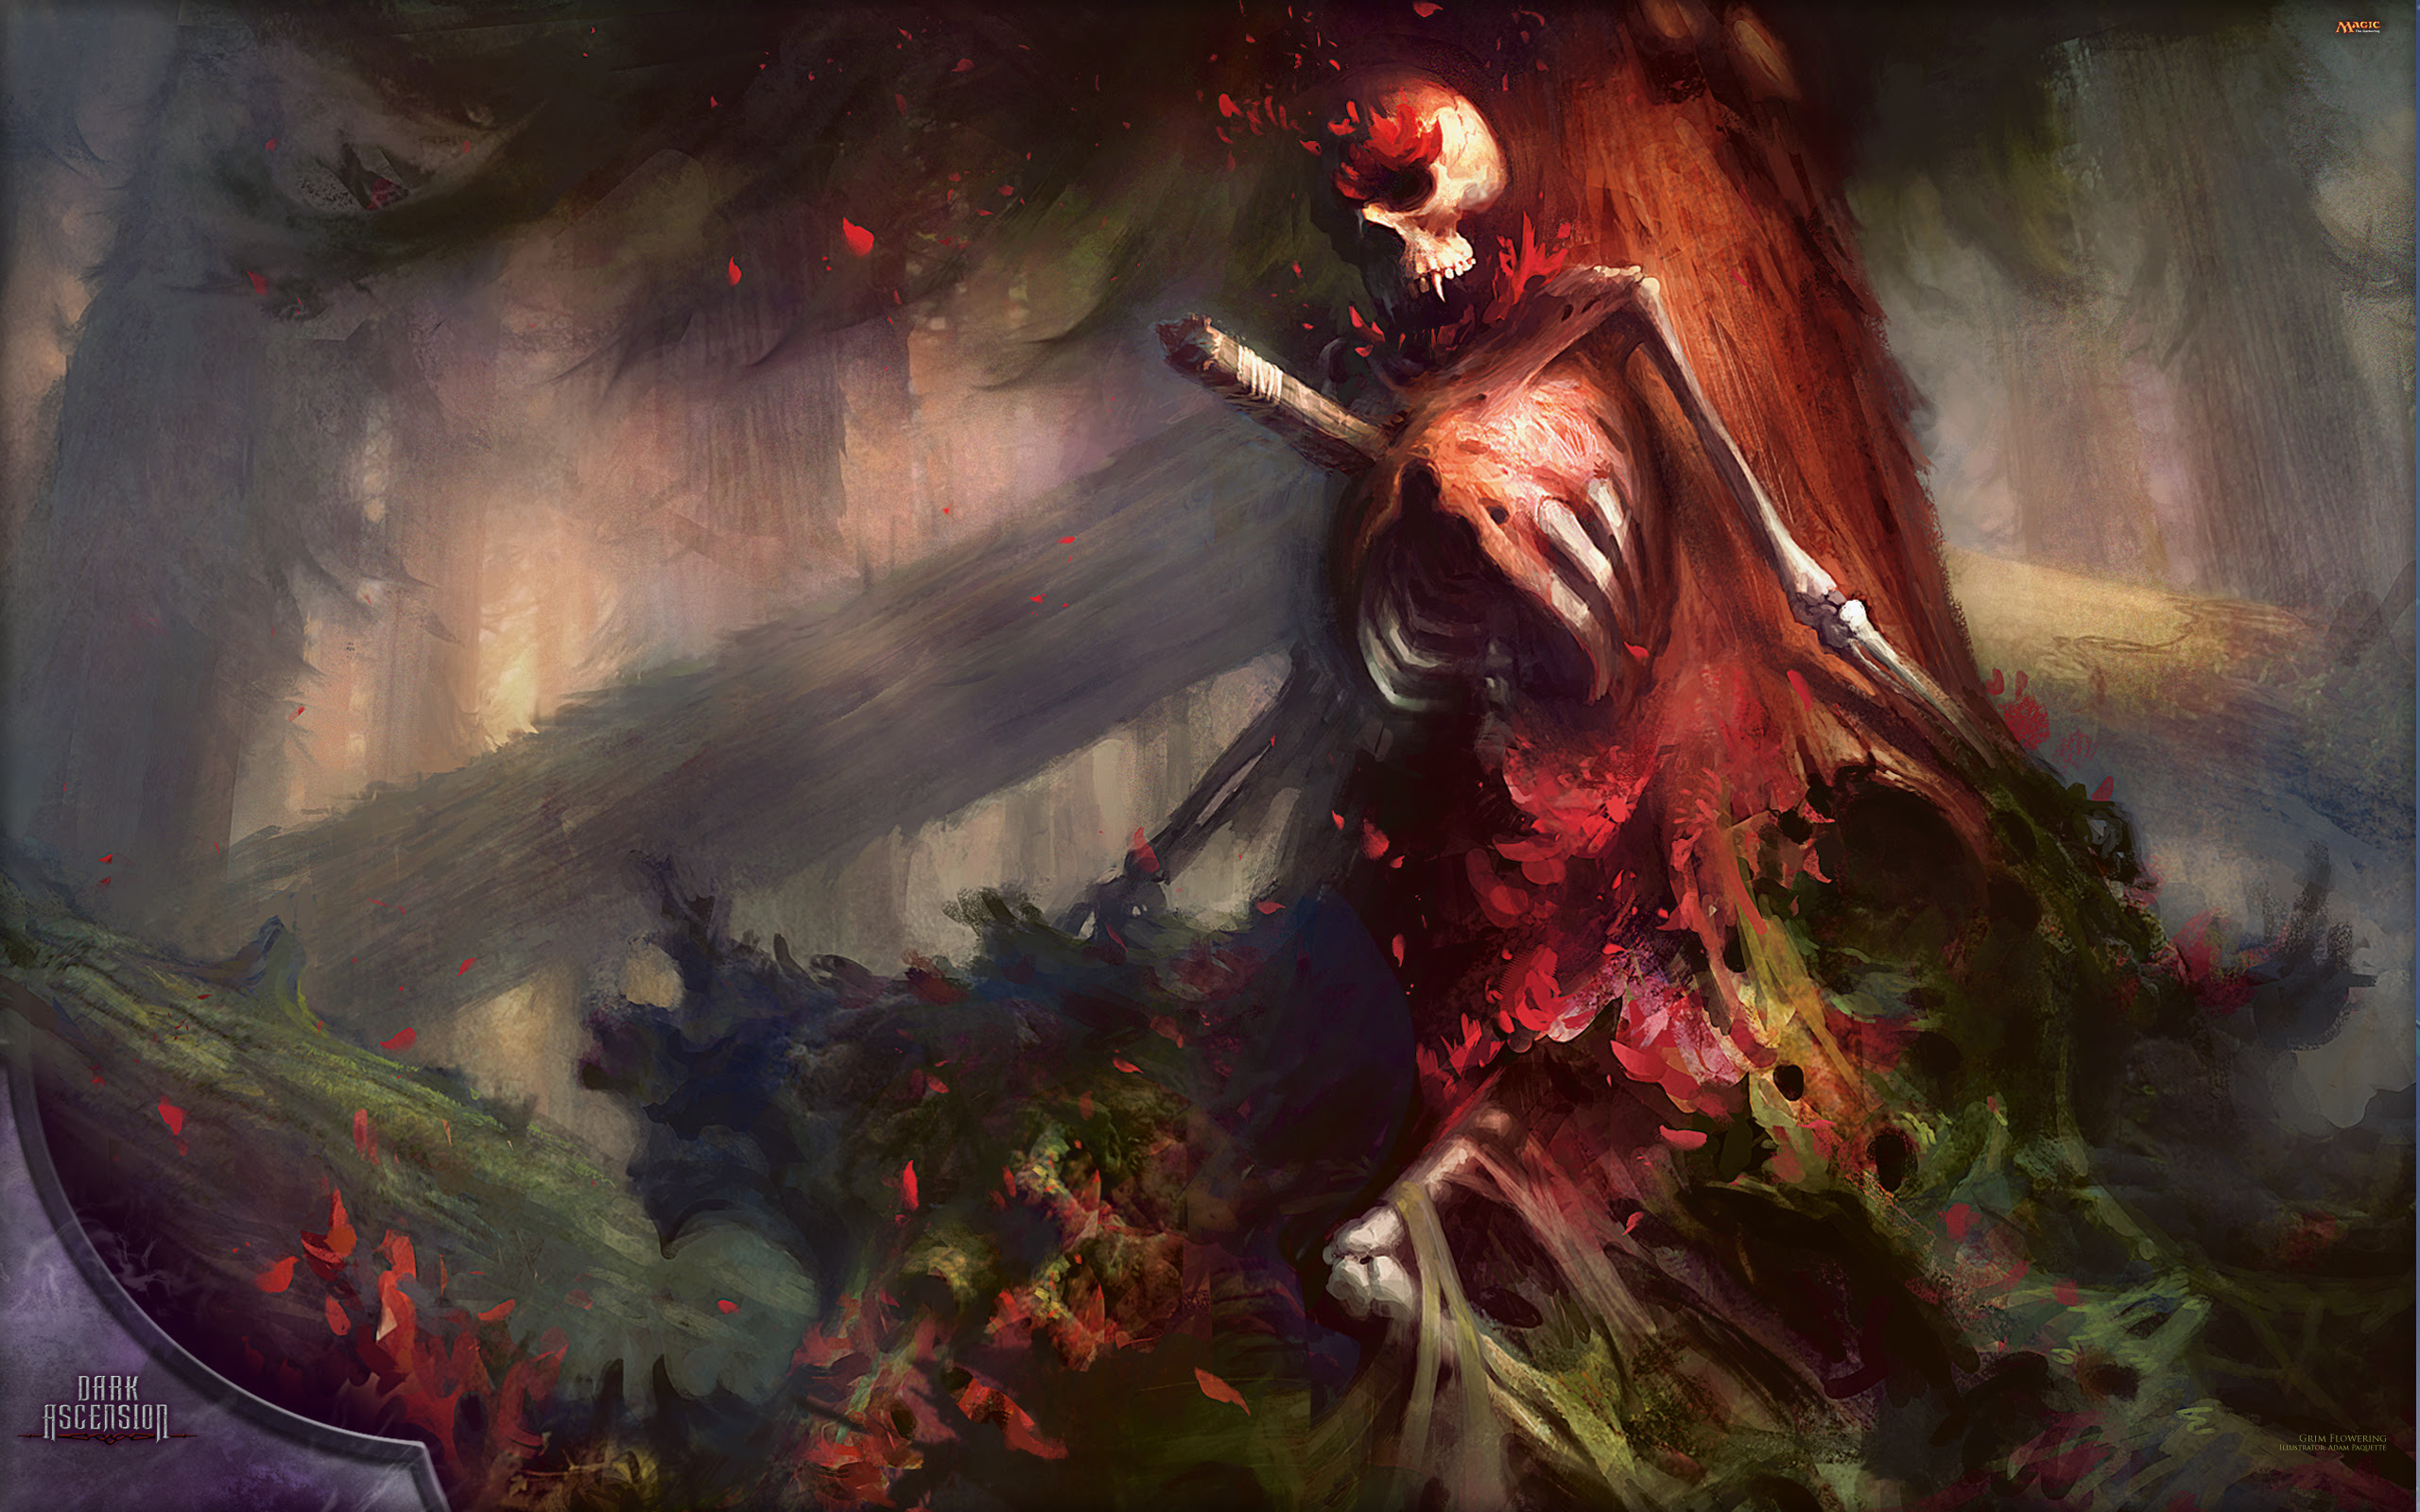 Wallpaper Of The Week Grim Flowering Magic The Gathering